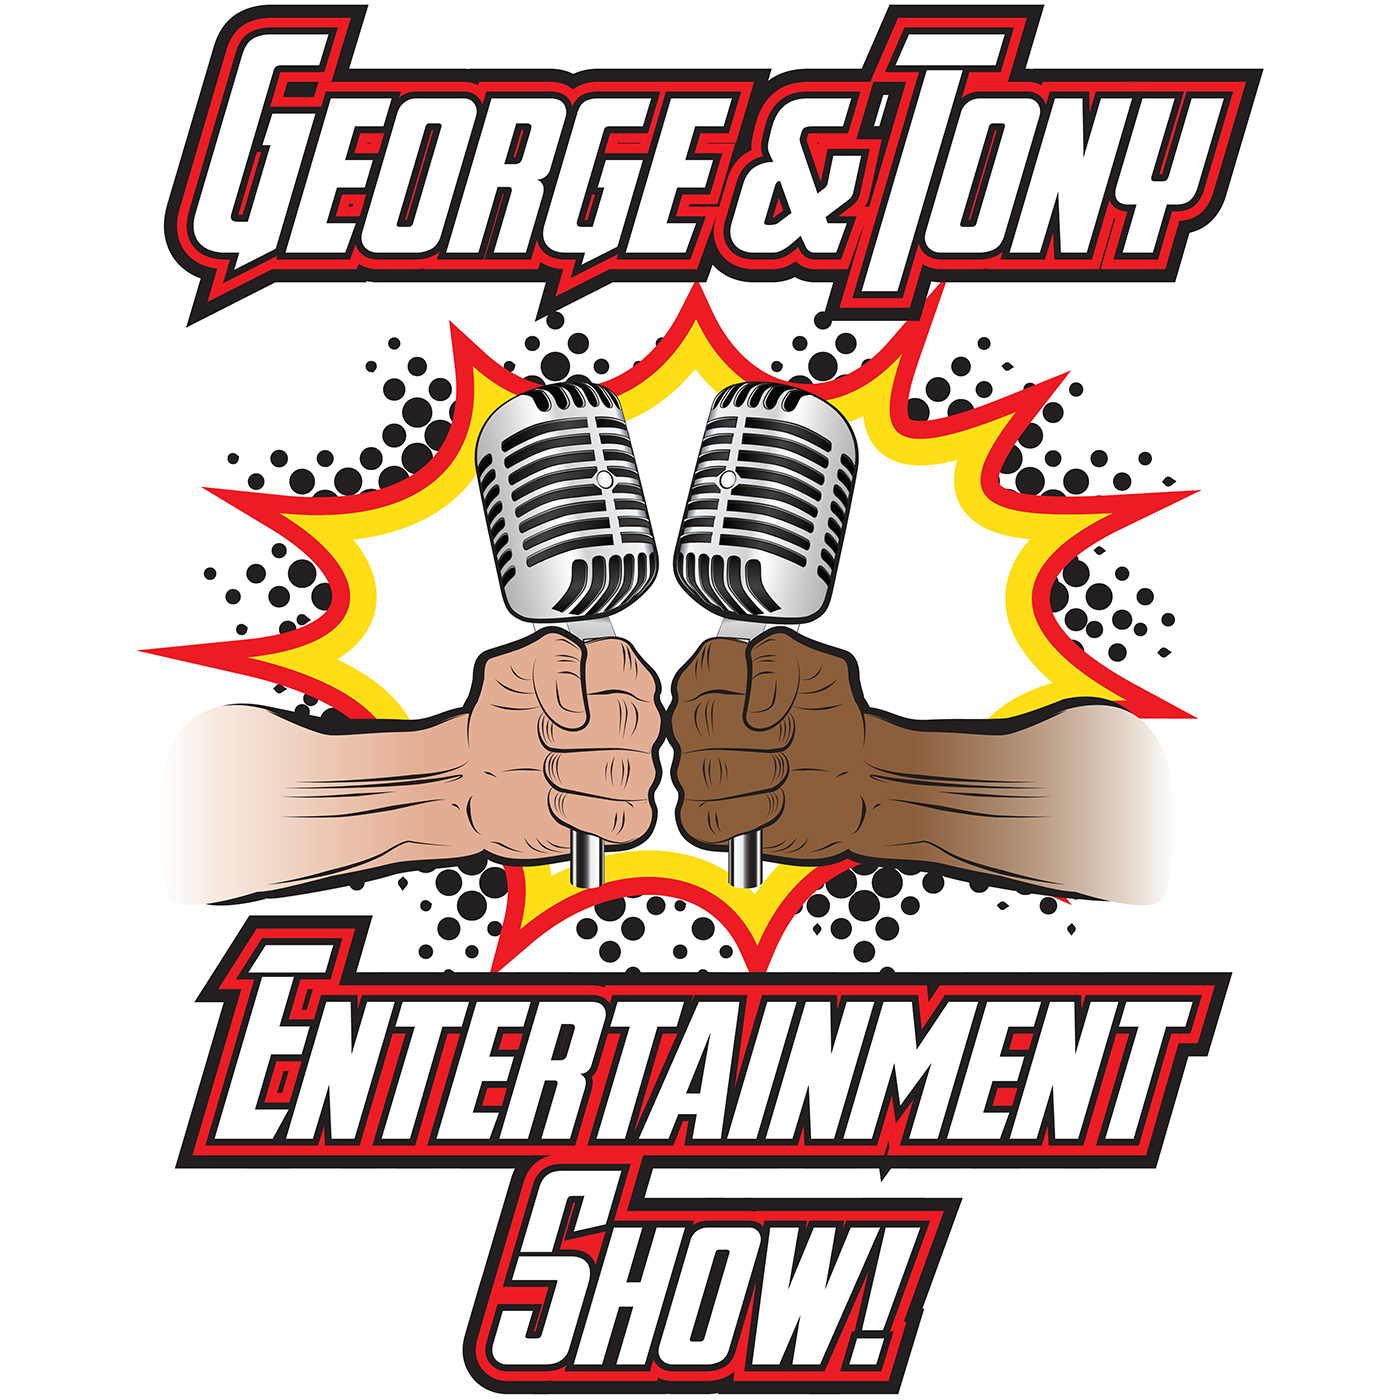 George and Tony Entertainment Show #32